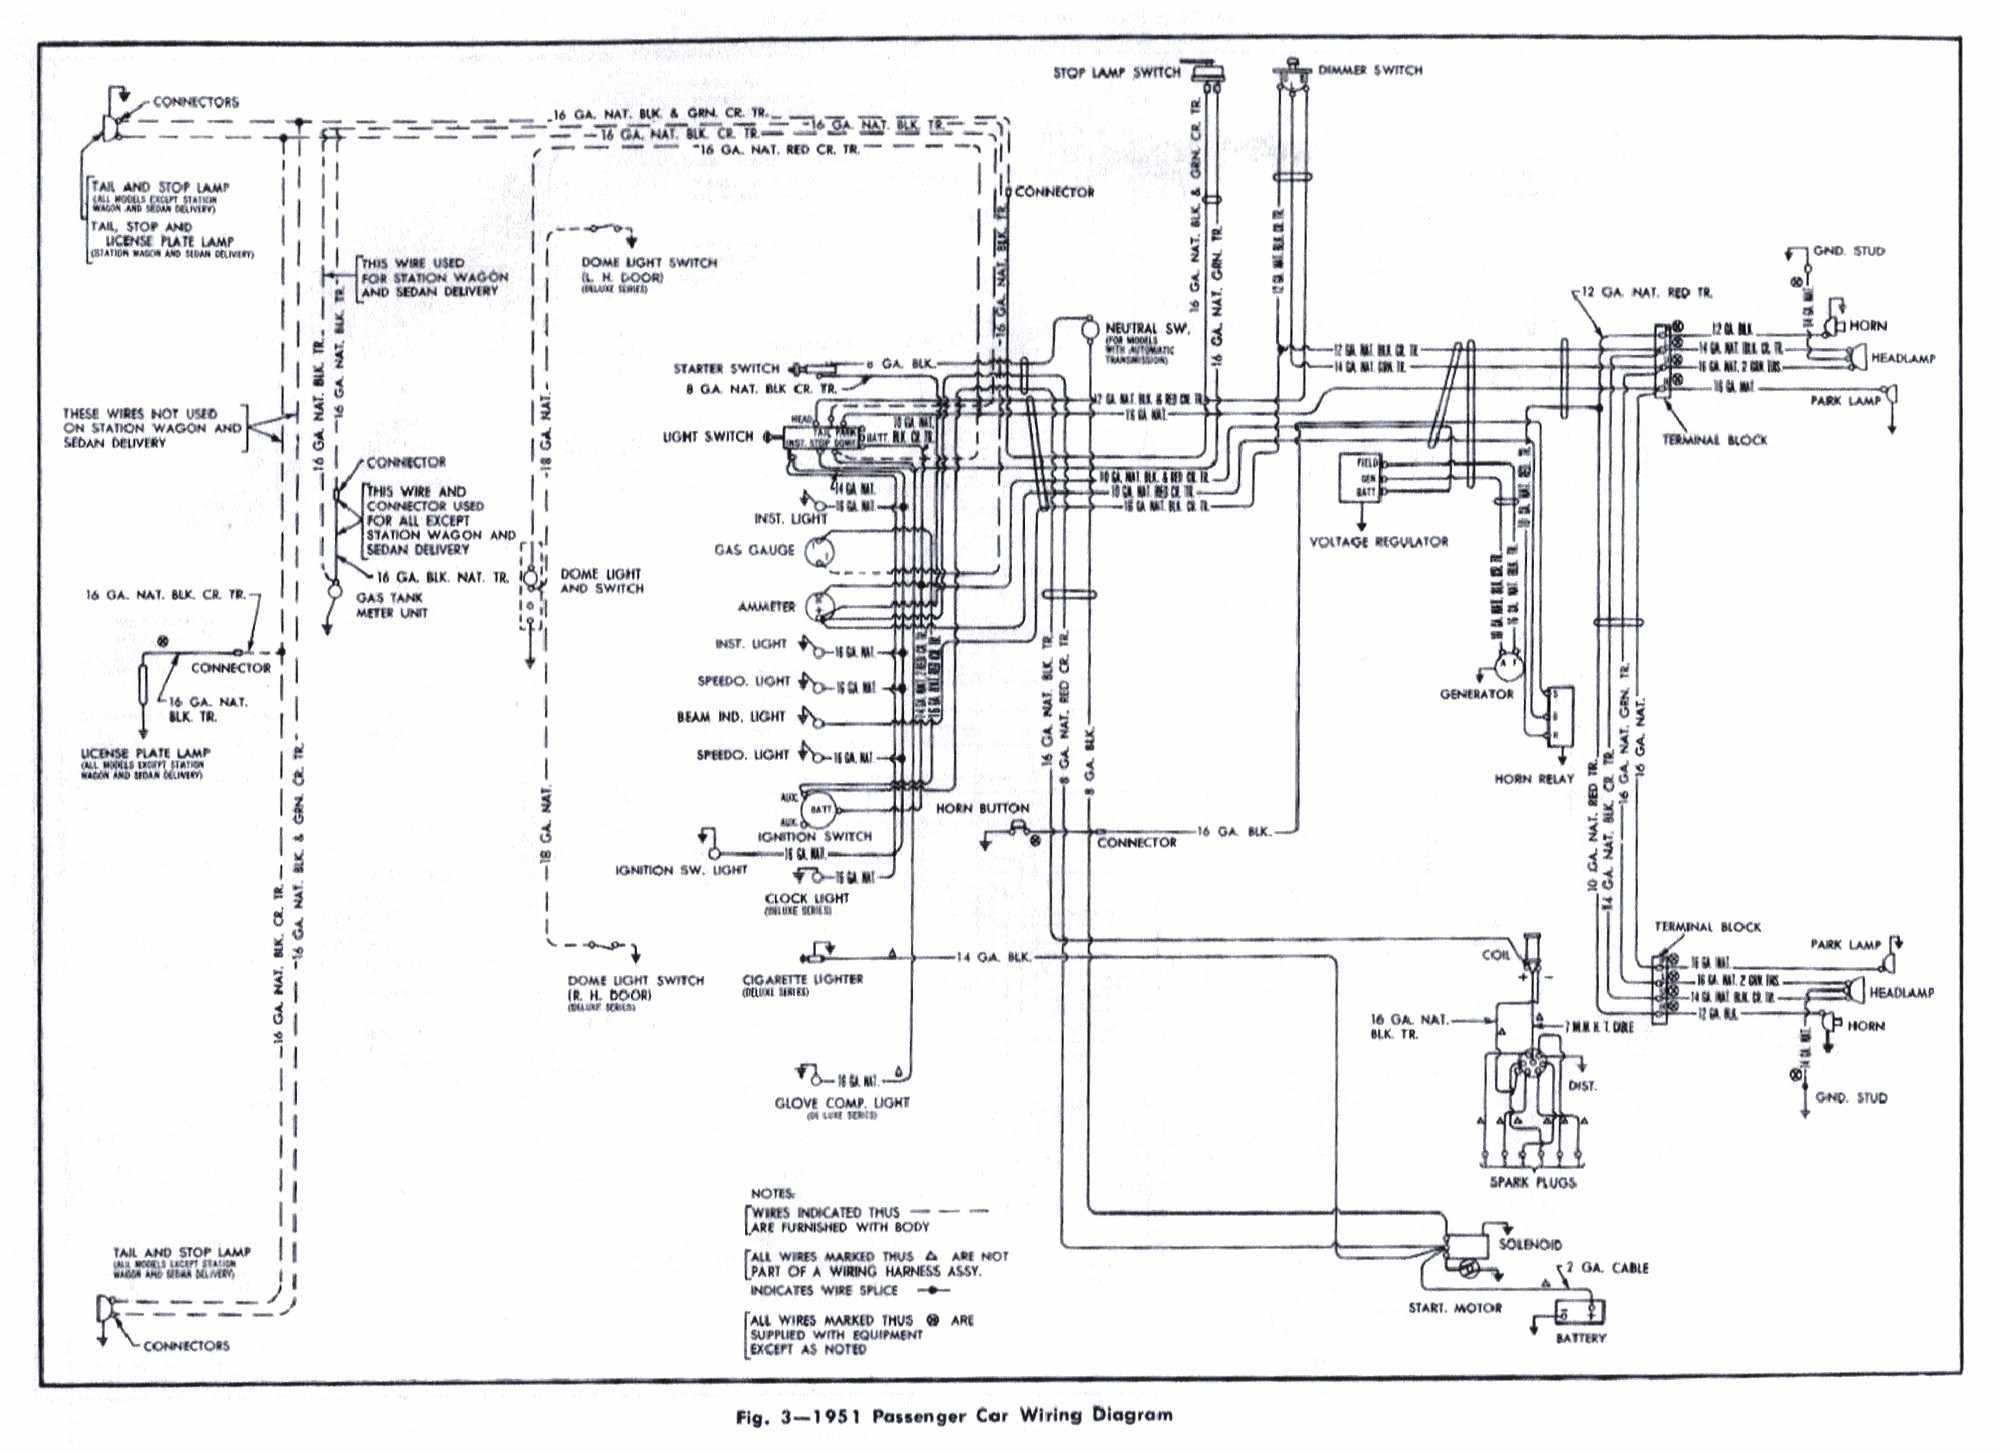 small resolution of cool toyota alarm installation wiring diagrams ideas the best diagram of a giant clock beautiful toyota